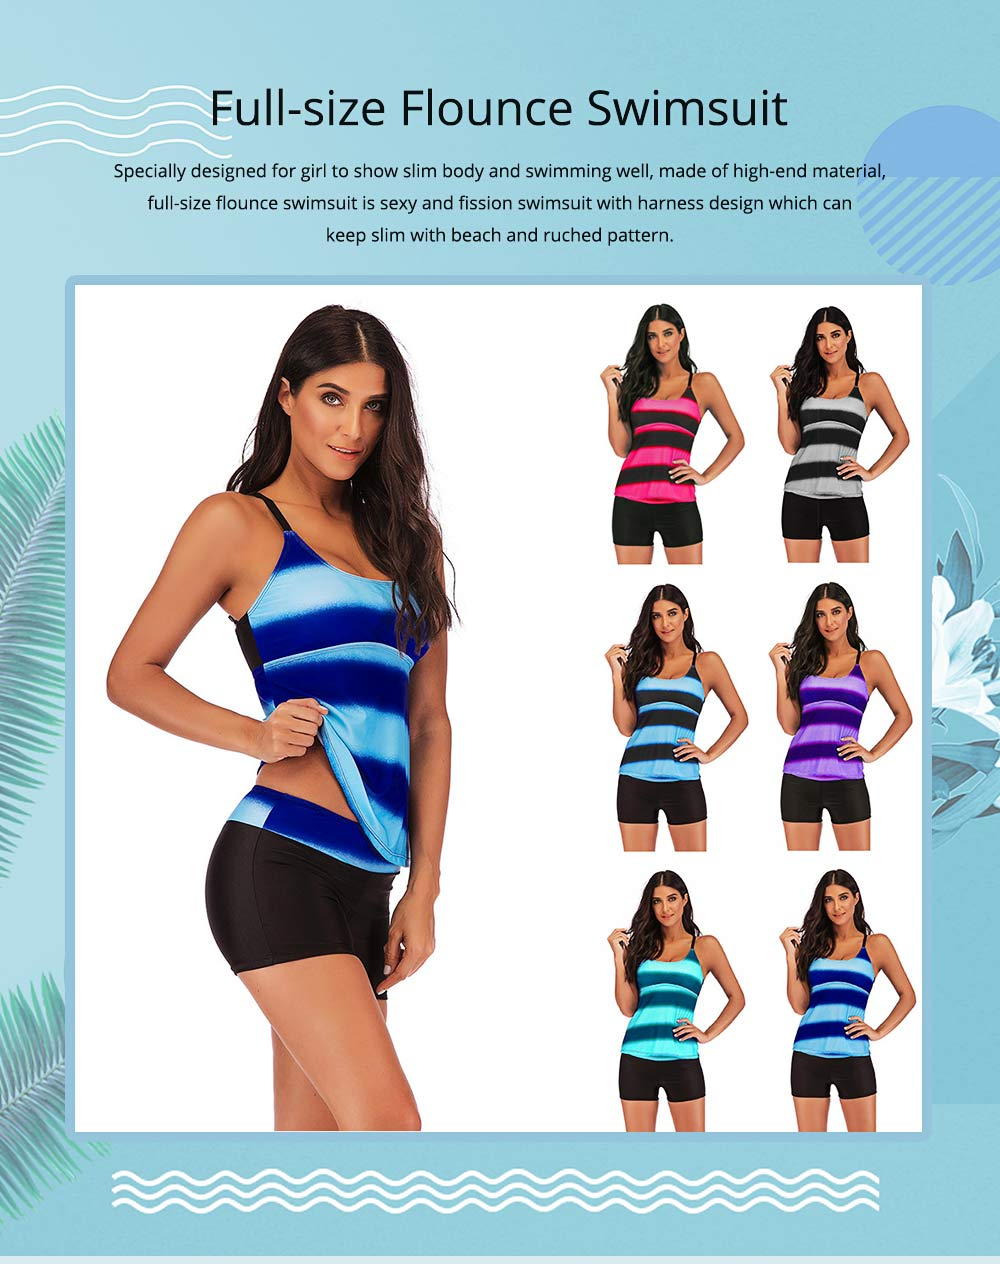 Full-size Flounce Swimsuit Digital Print Fission Swimsuit Slimming, Straps Slimming Swimsuit with Various Style 0